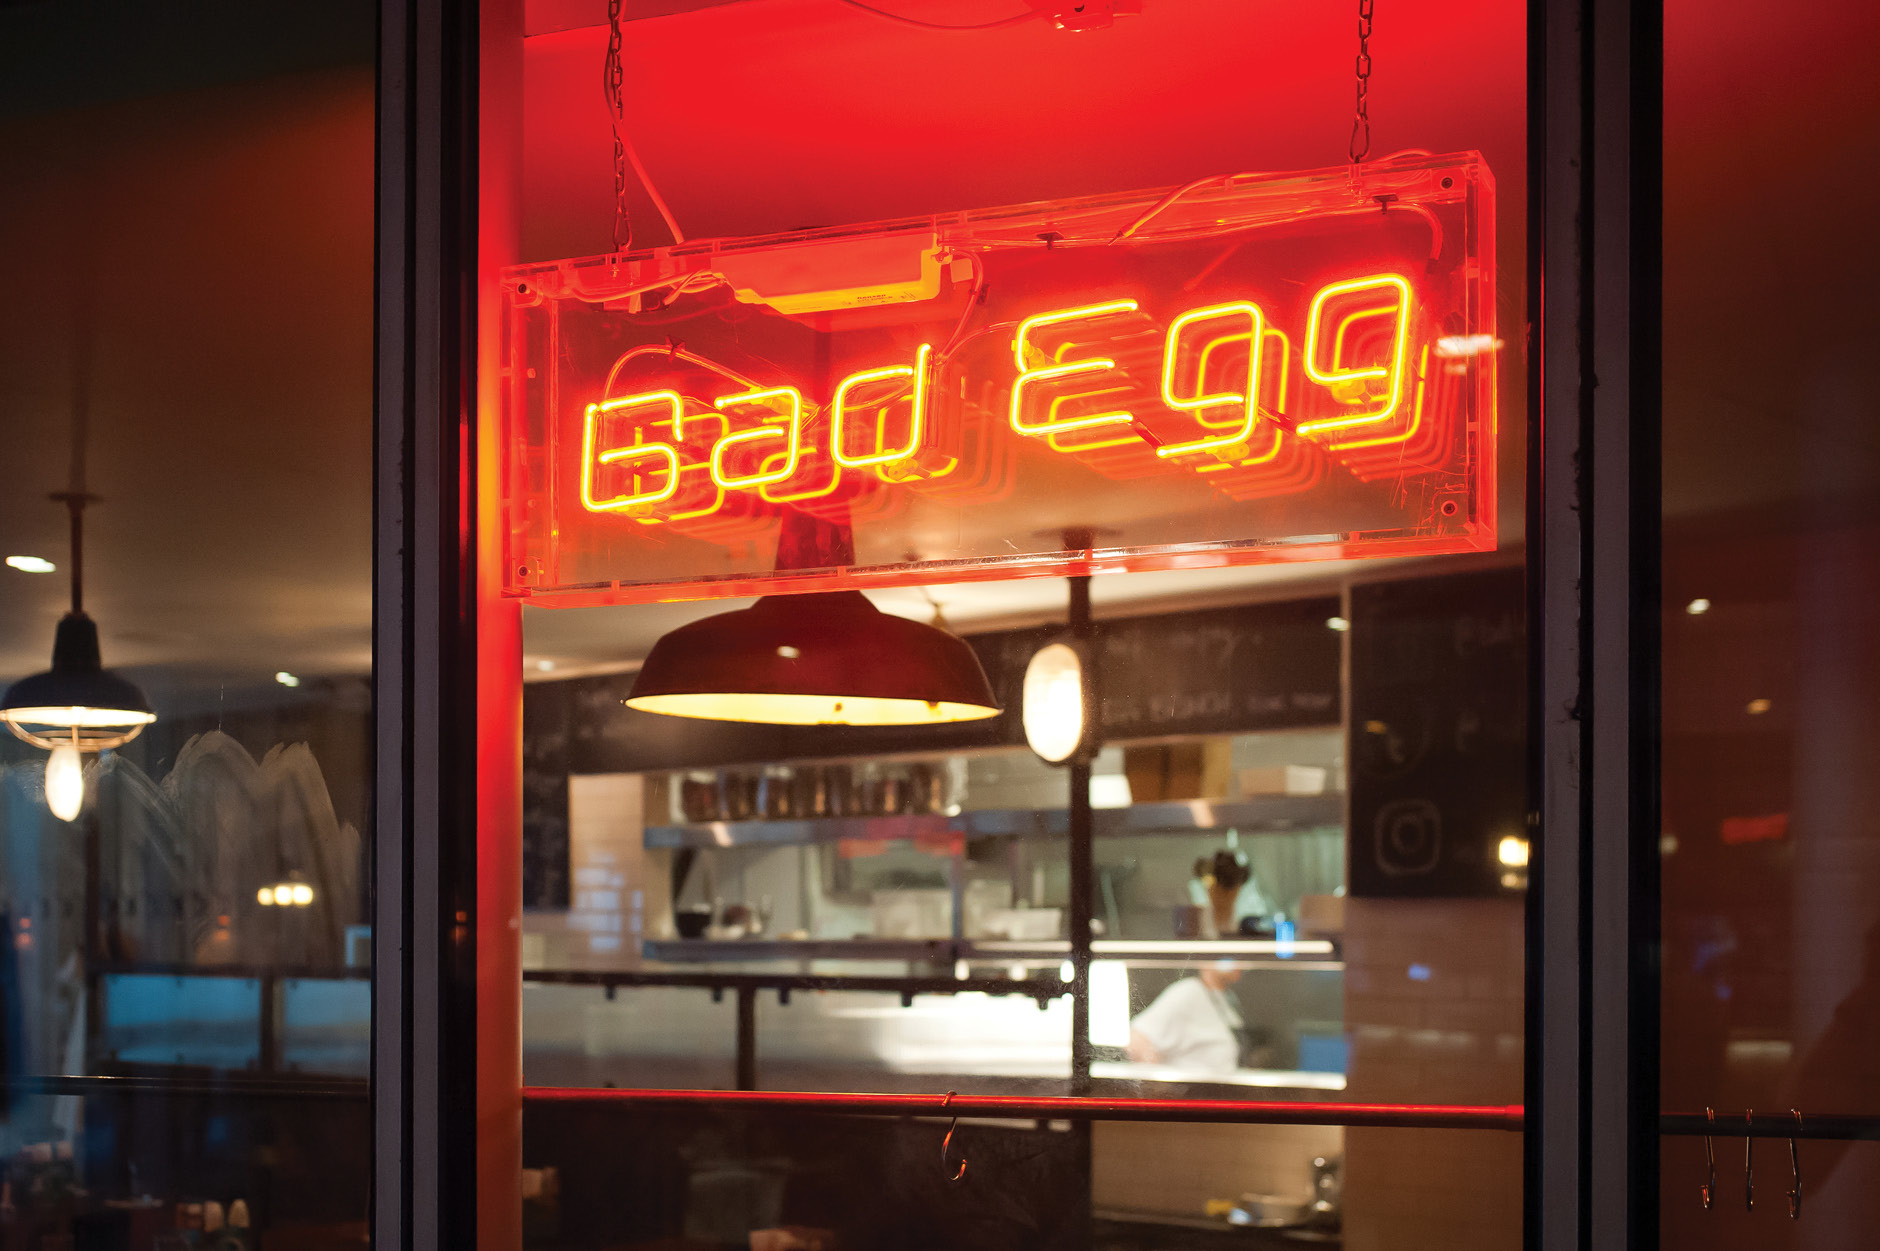 Bad_Egg_Moorgate_exterior_neon_sign_1